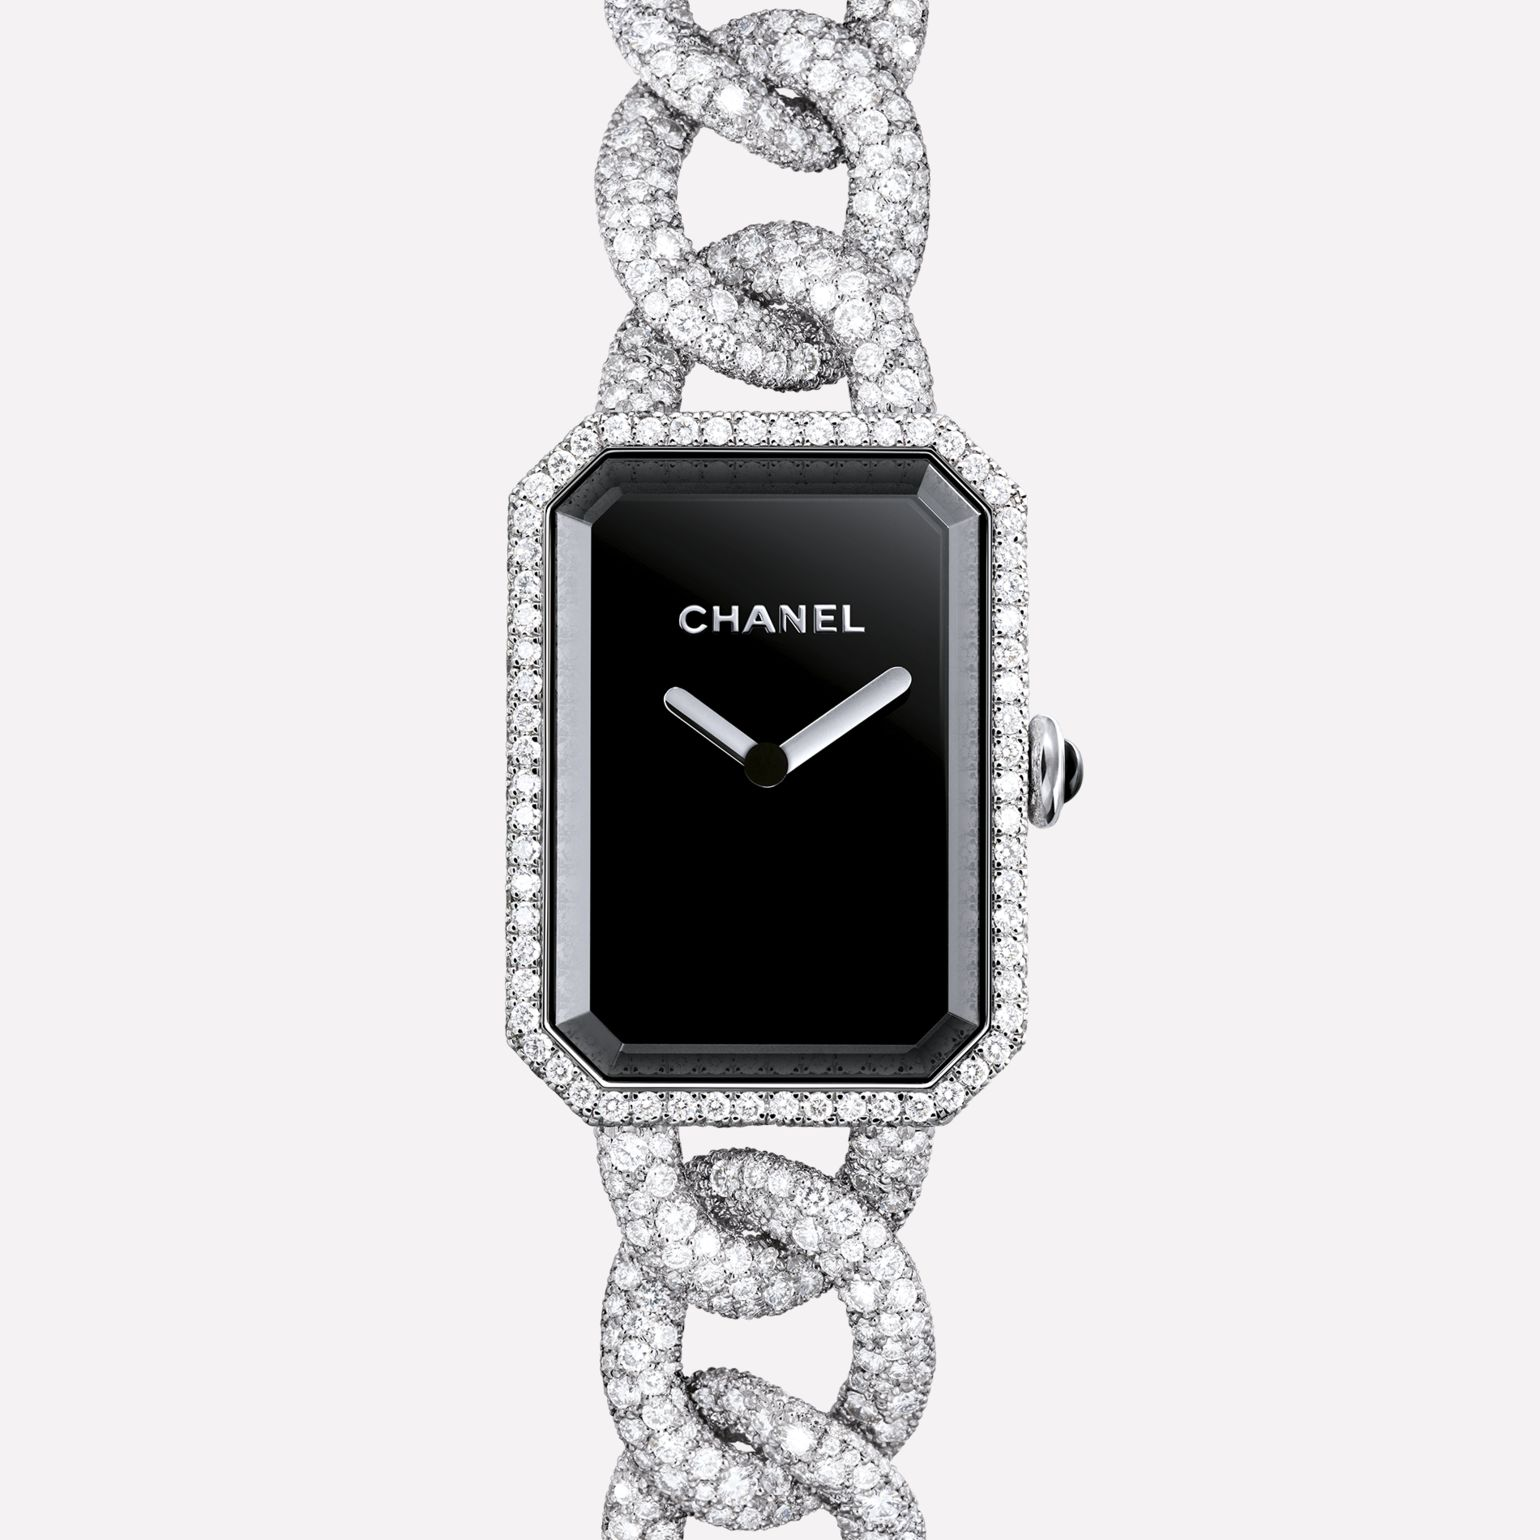 Première Jewelry Watch Large version, white gold and diamonds, black-lacquered dial